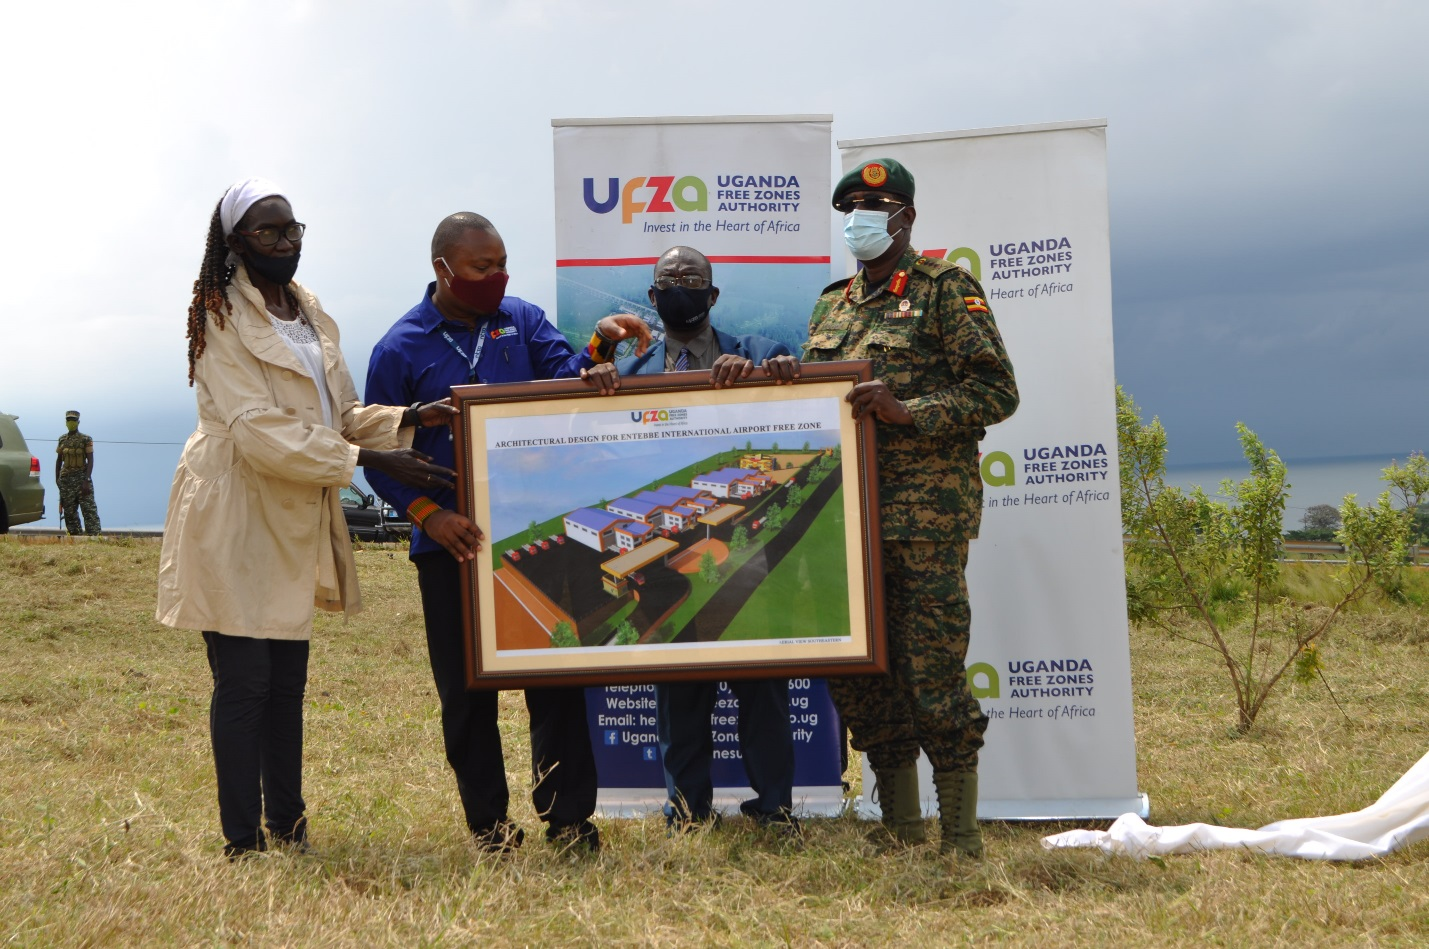 The Uganda Free Zones Authority (UFZA) team (L-R Ms Grace Achire Labong – Vice Chairperson, Board of Directors, Mr. Hez Kimoomi Alinda – Executive Director and Eng. Dr. Feredrick Kiwanuka - Chairman, Board of Directors) hand over the architectural designs for construction of Entebbe International Airport Free Zone to Gen. James Mugira – Managing Director, National Enterprise Corporation (NEC) (PHOTO/Courtesy)